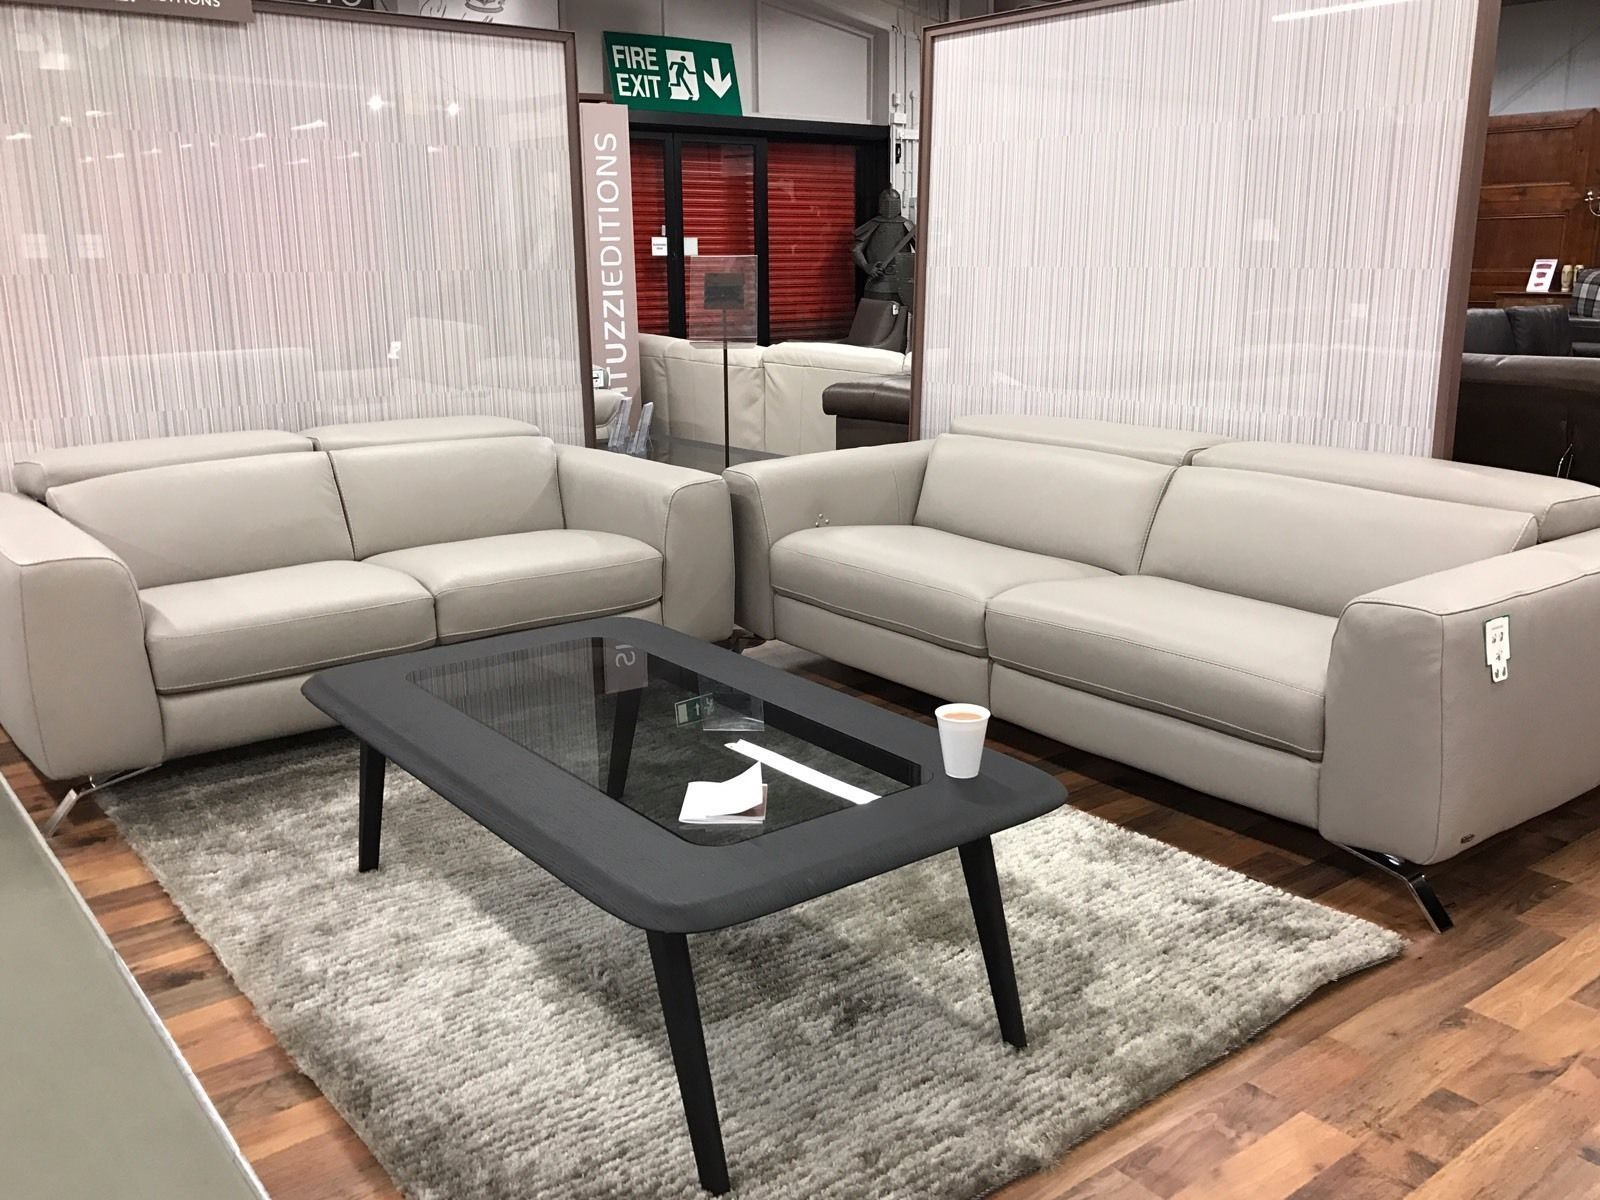 Natuzzi Editions Luca Grey Leather Power Reclining 3 2 Seater pertaining to sizing 1600 X 1200